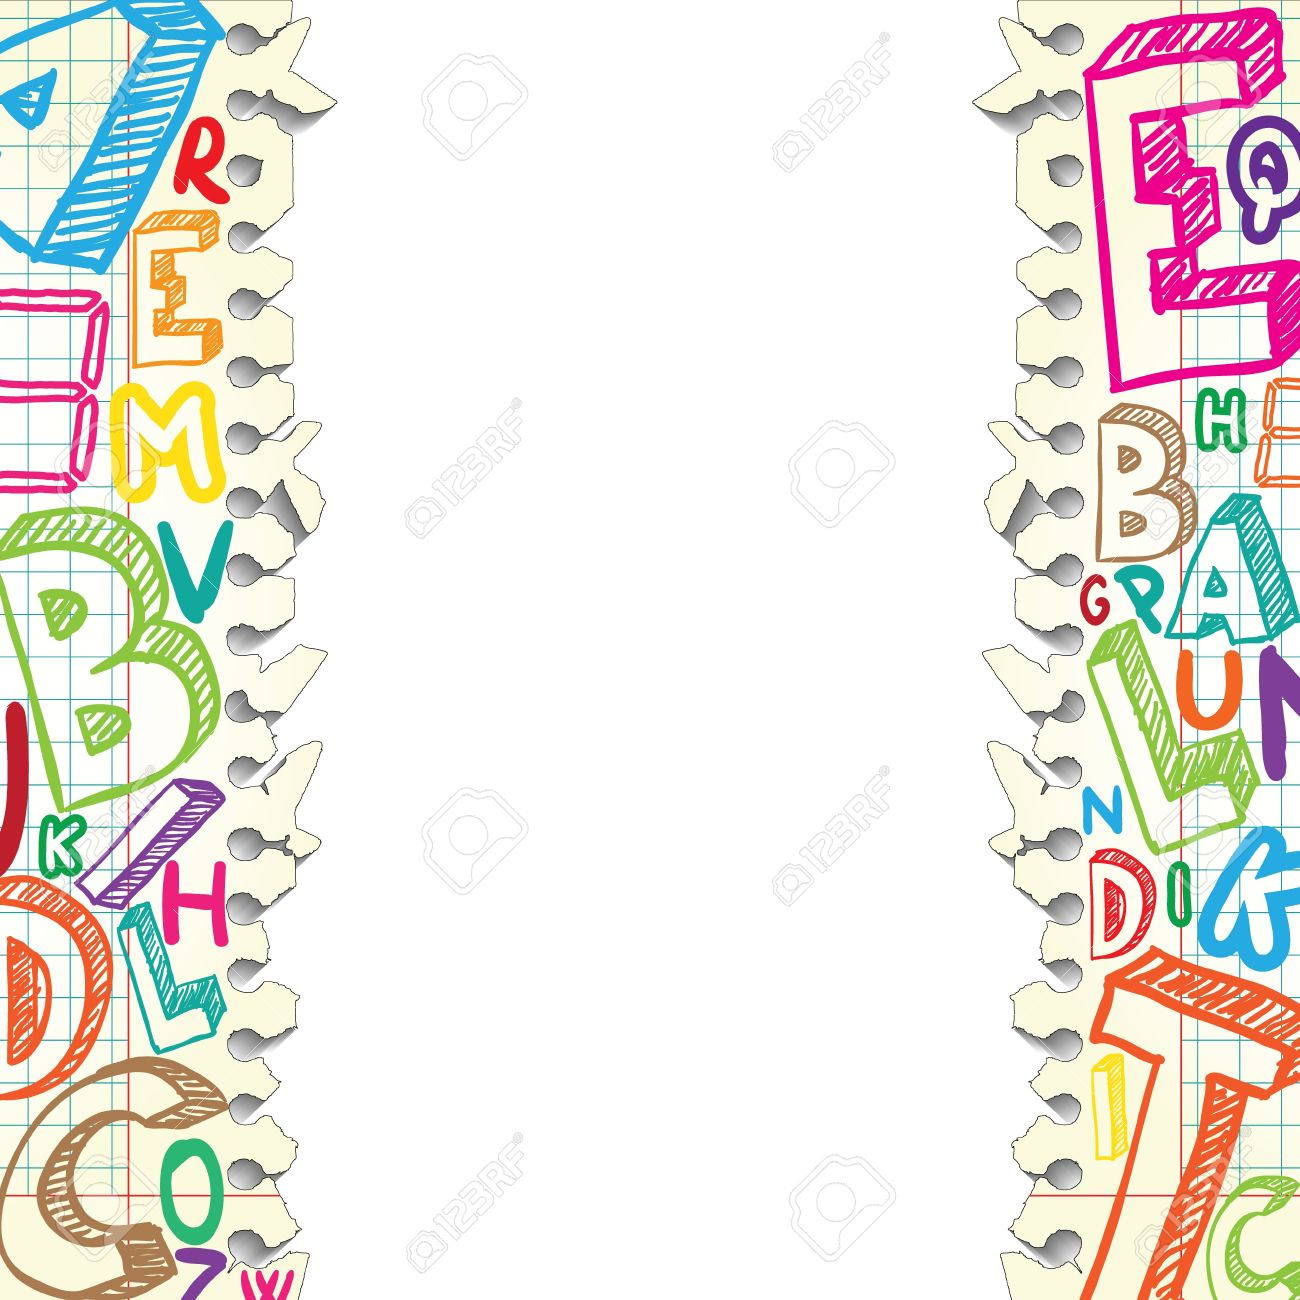 Background made of papers with colorful letters - 14180784